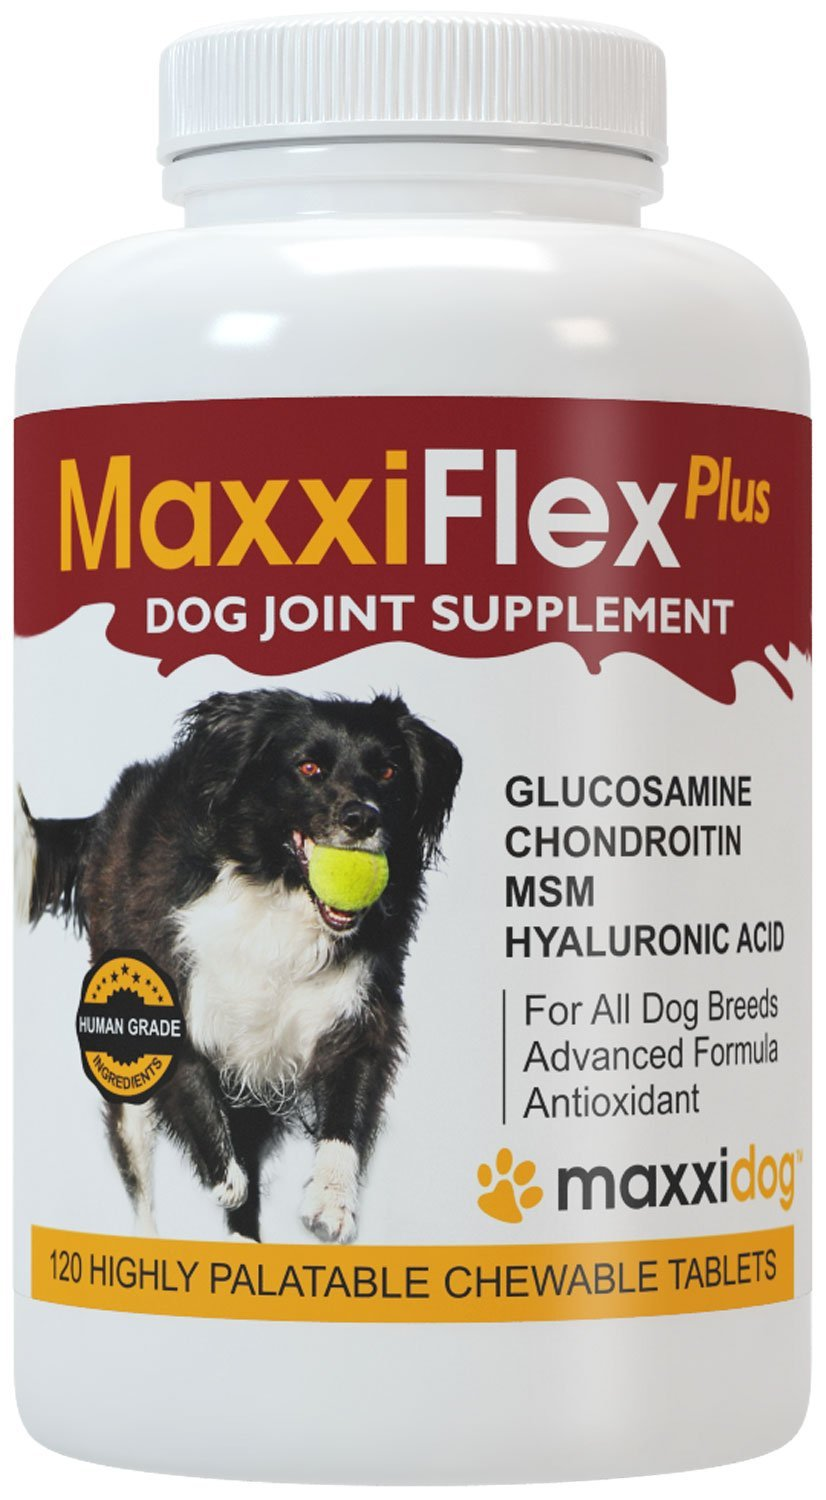 MaxxiFlex Plus Dog Joint Supplement